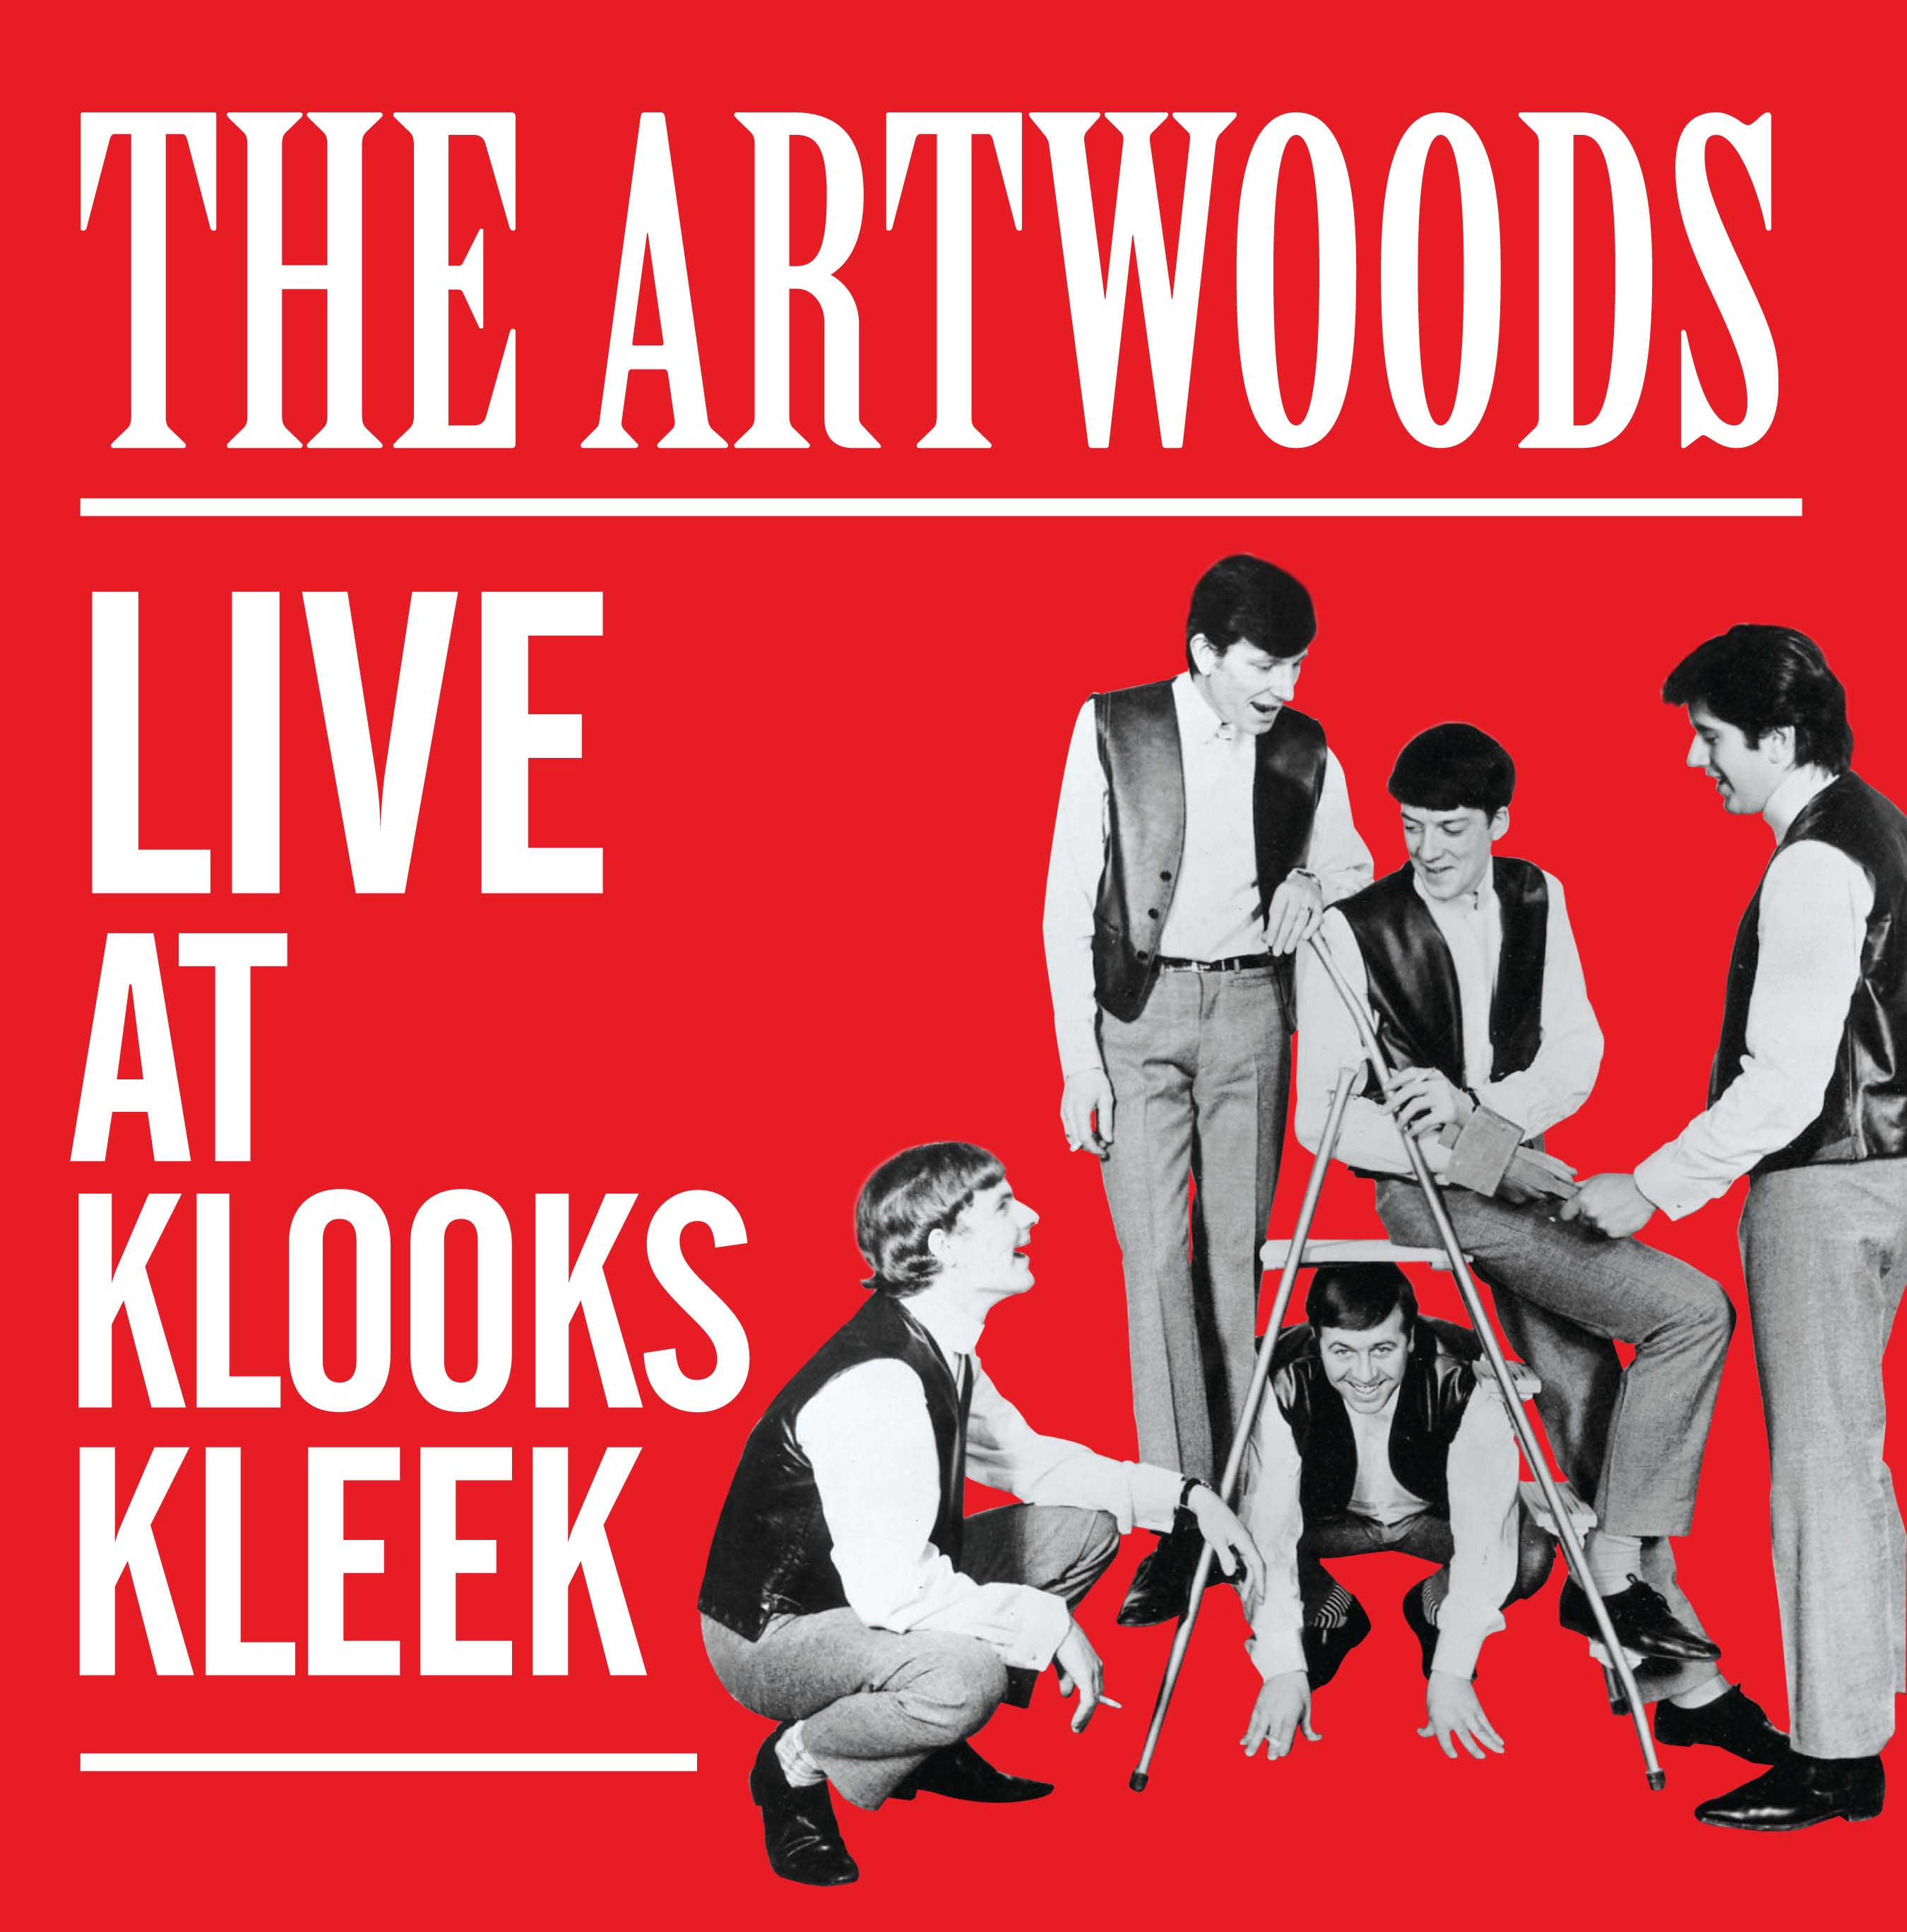 THE ARTWOODS Live At Klooks Kleek Rare Vinyl LP